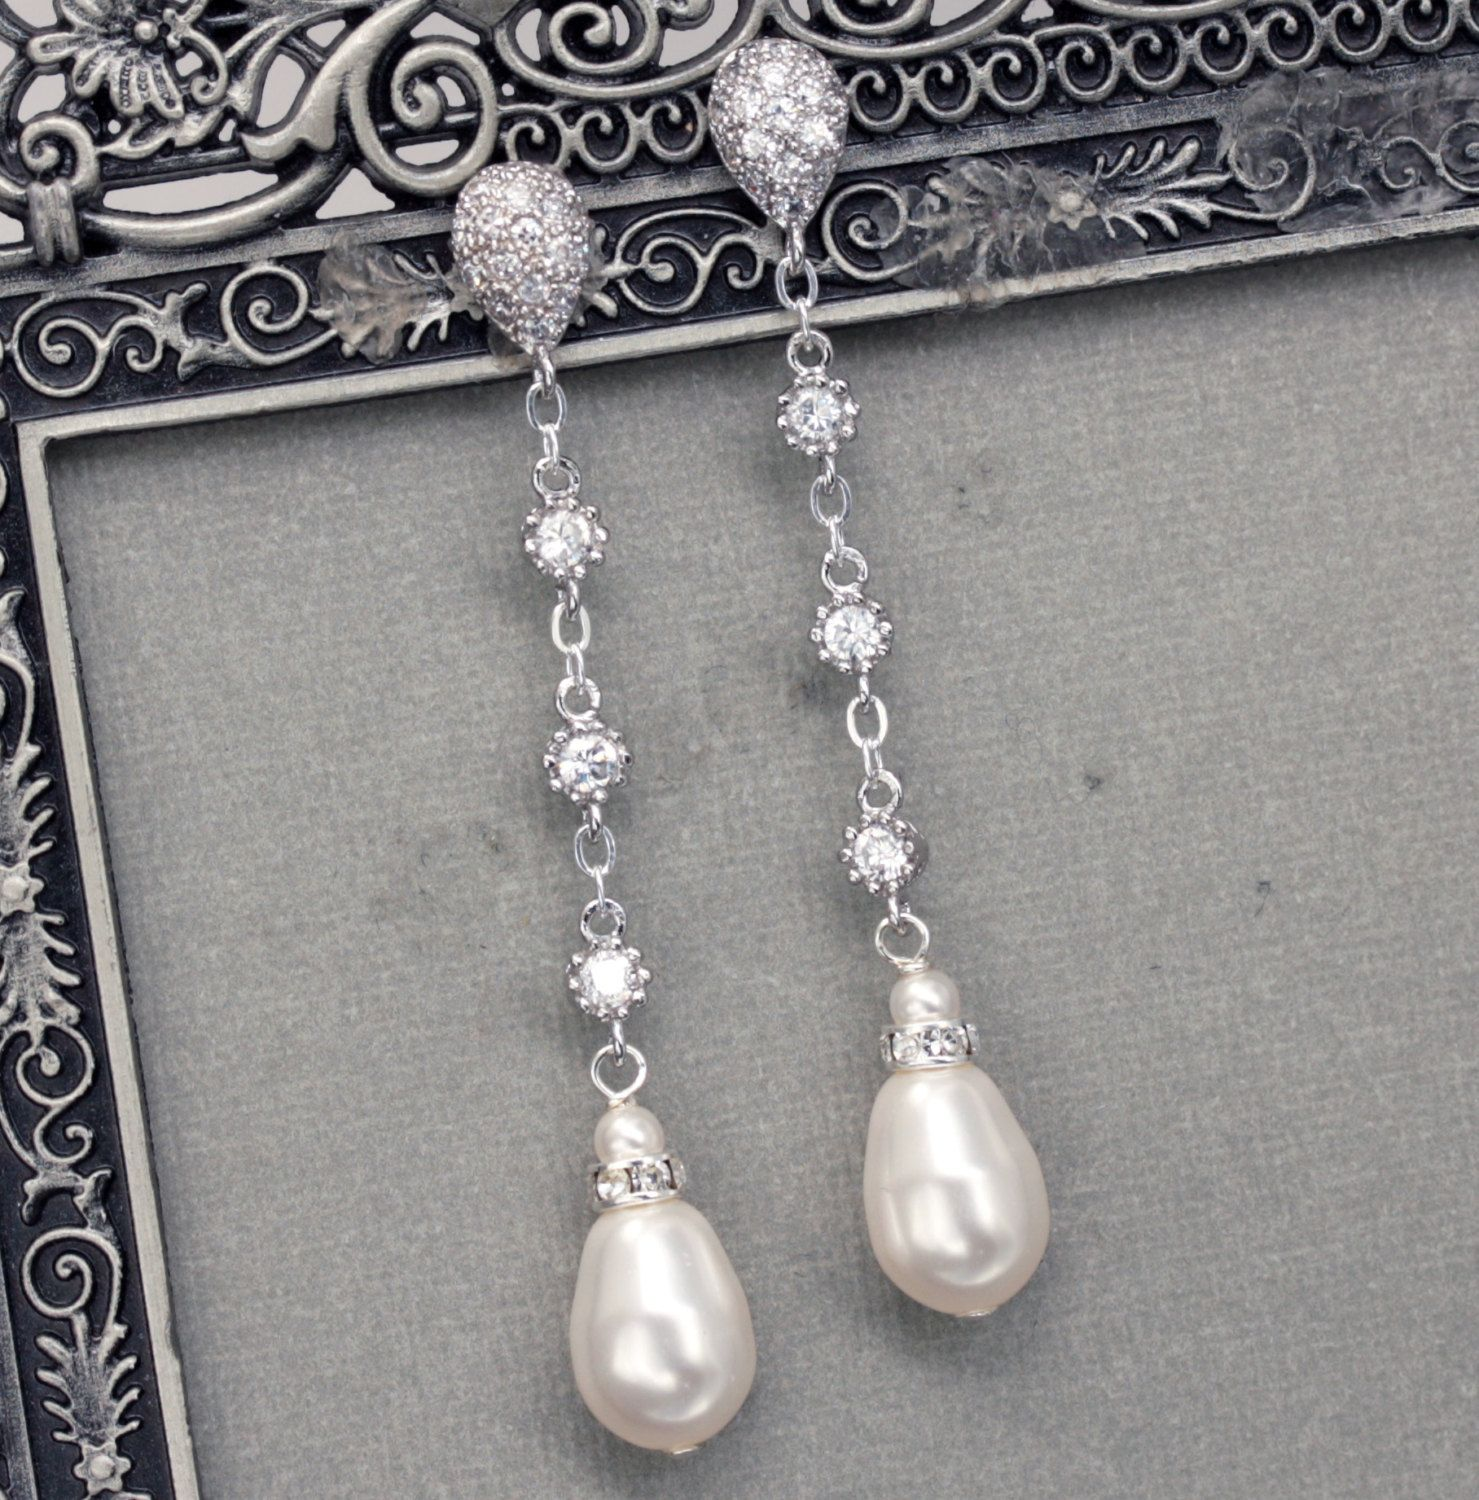 c38a9056f40e9a Long Pearl Dangle Earrings, Bridal Pearl Drop Earrings, Teardrop Pearl  Earrings, Wedding Jewelry, Pearl and Rhinestone